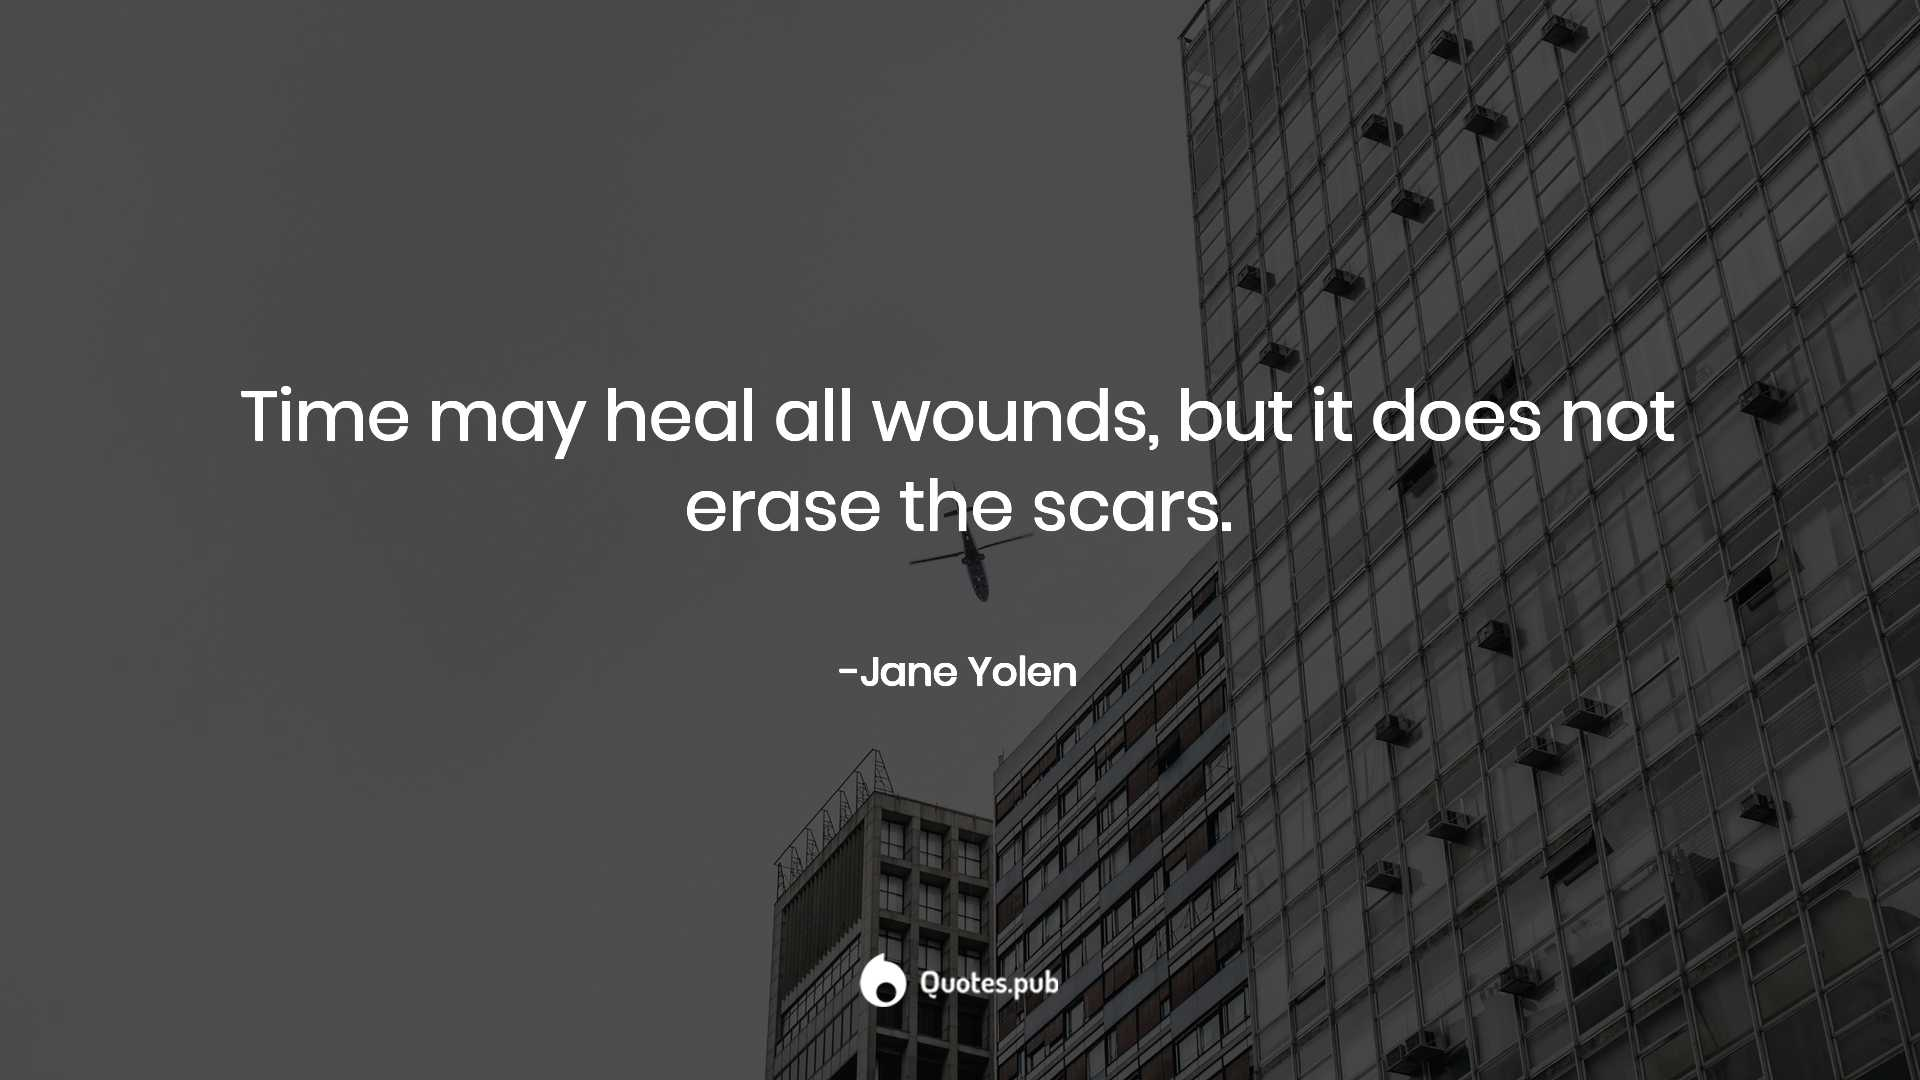 Time May Heal All Wounds But It Does Not Jane Yolen Quotespub